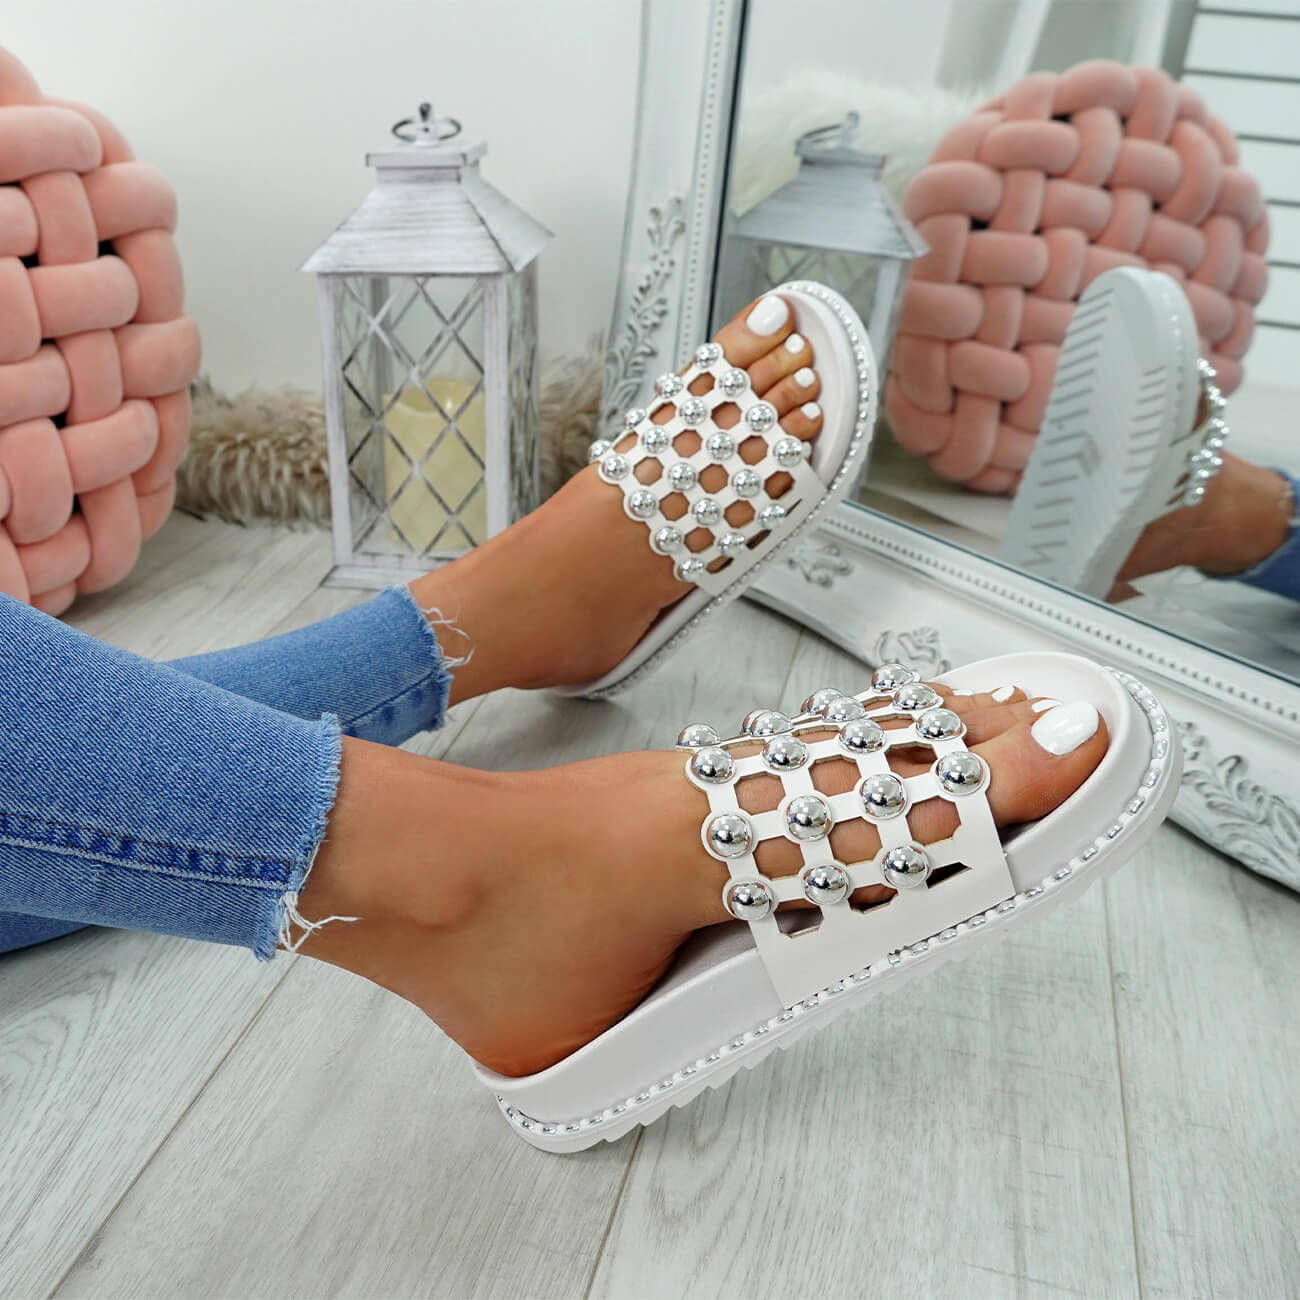 WOMENS-LADIES-PEARL-STUDDED-SLIP-ON-FLAT-SANDALS-HEELS-FLIP-FLOP-SHOES-SIZE thumbnail 24